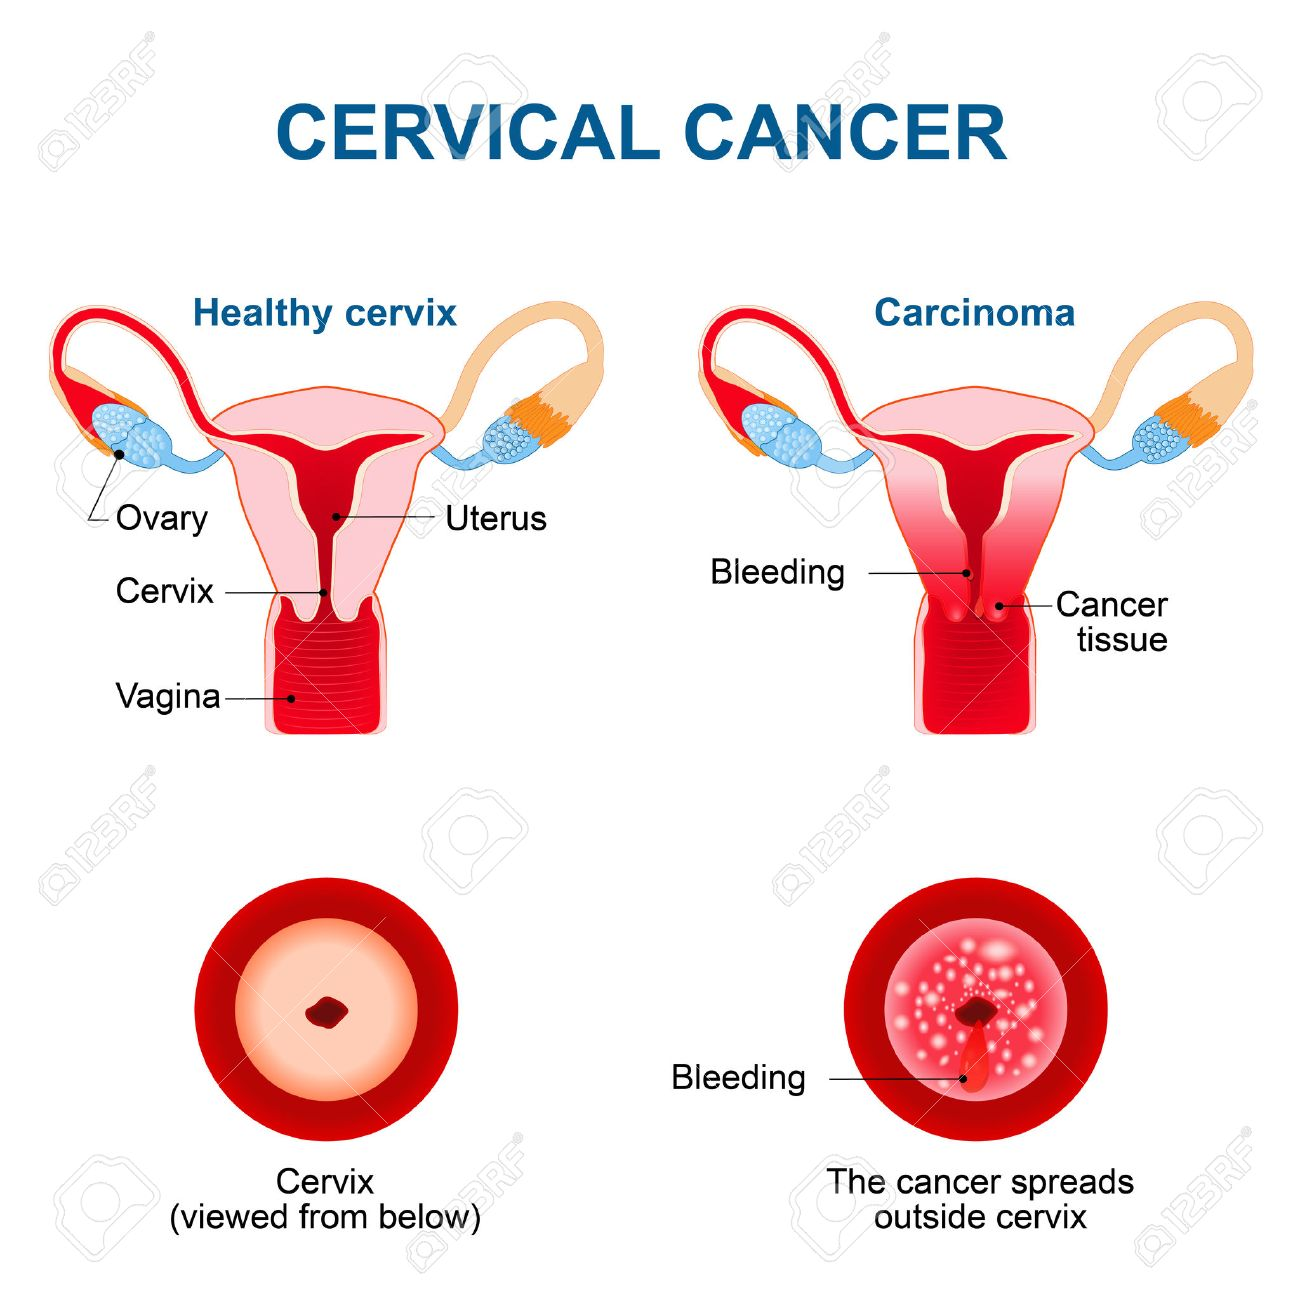 2041 cervix stock illustrations cliparts and royalty free cervix cervical cancer carcinoma of cervix malignant neoplasm arising from cells in the cervix uteri ccuart Image collections